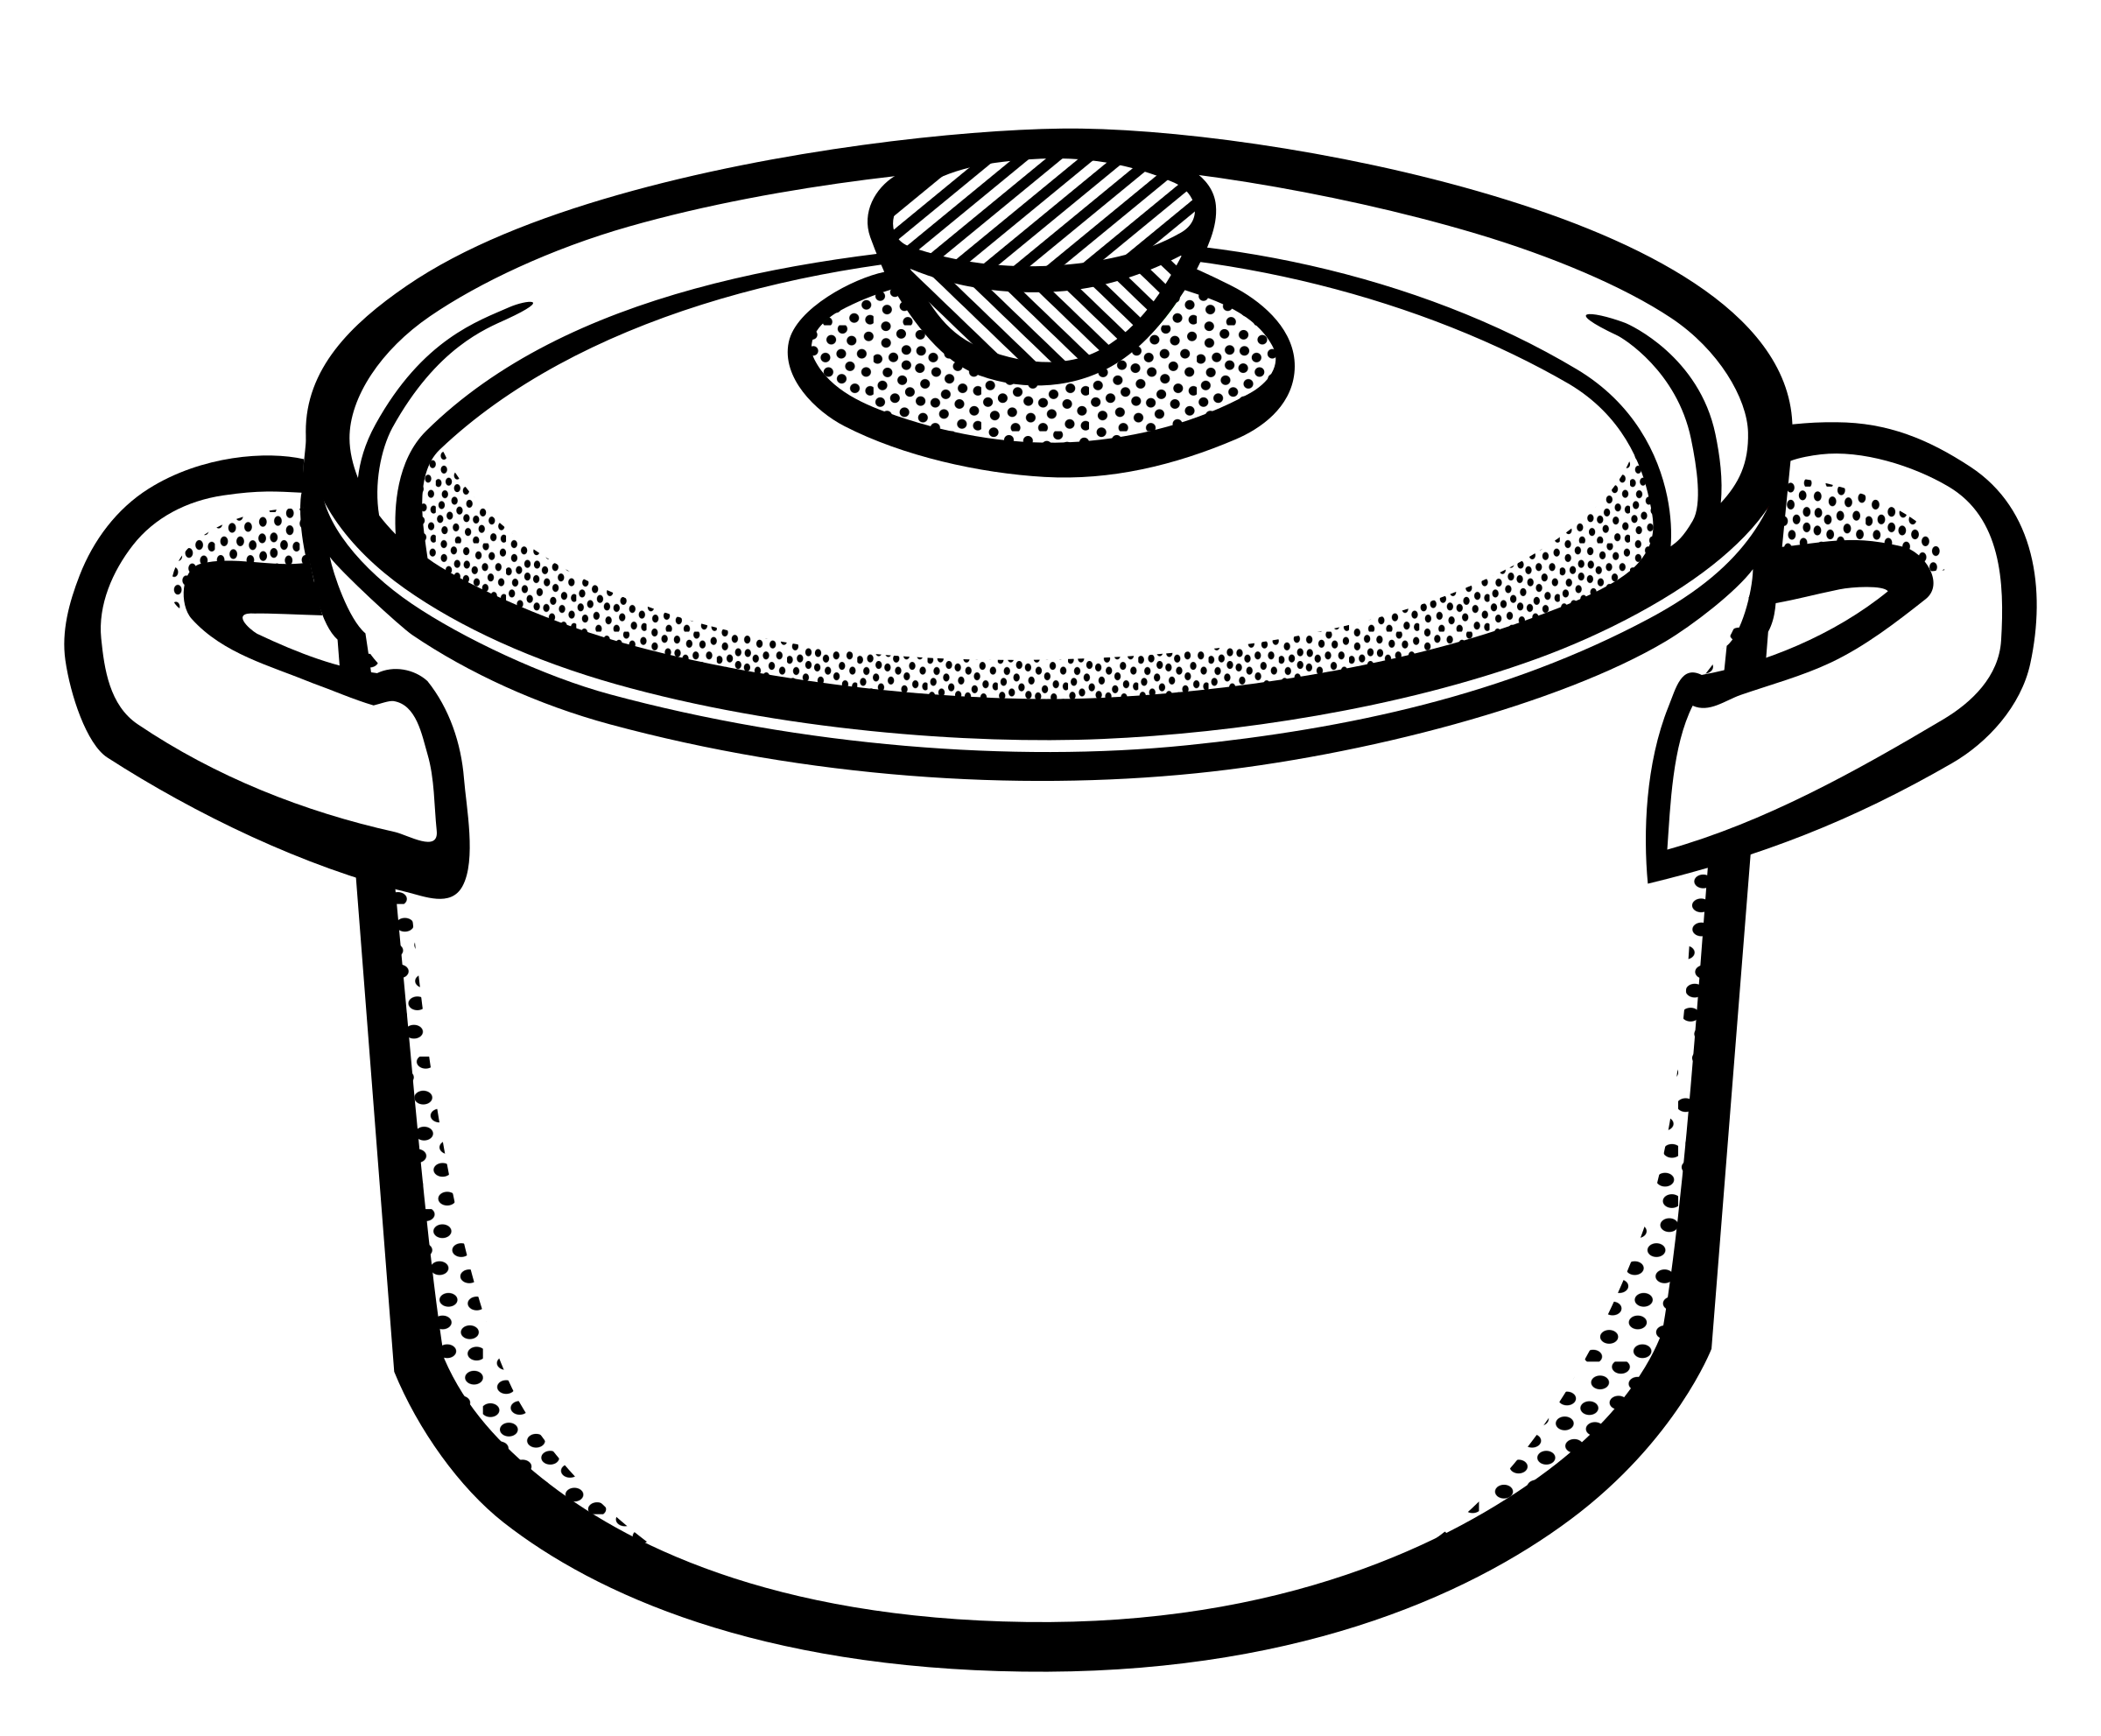 Cooking Pot Drawing at GetDrawings.com | Free for personal use ... picture transparent